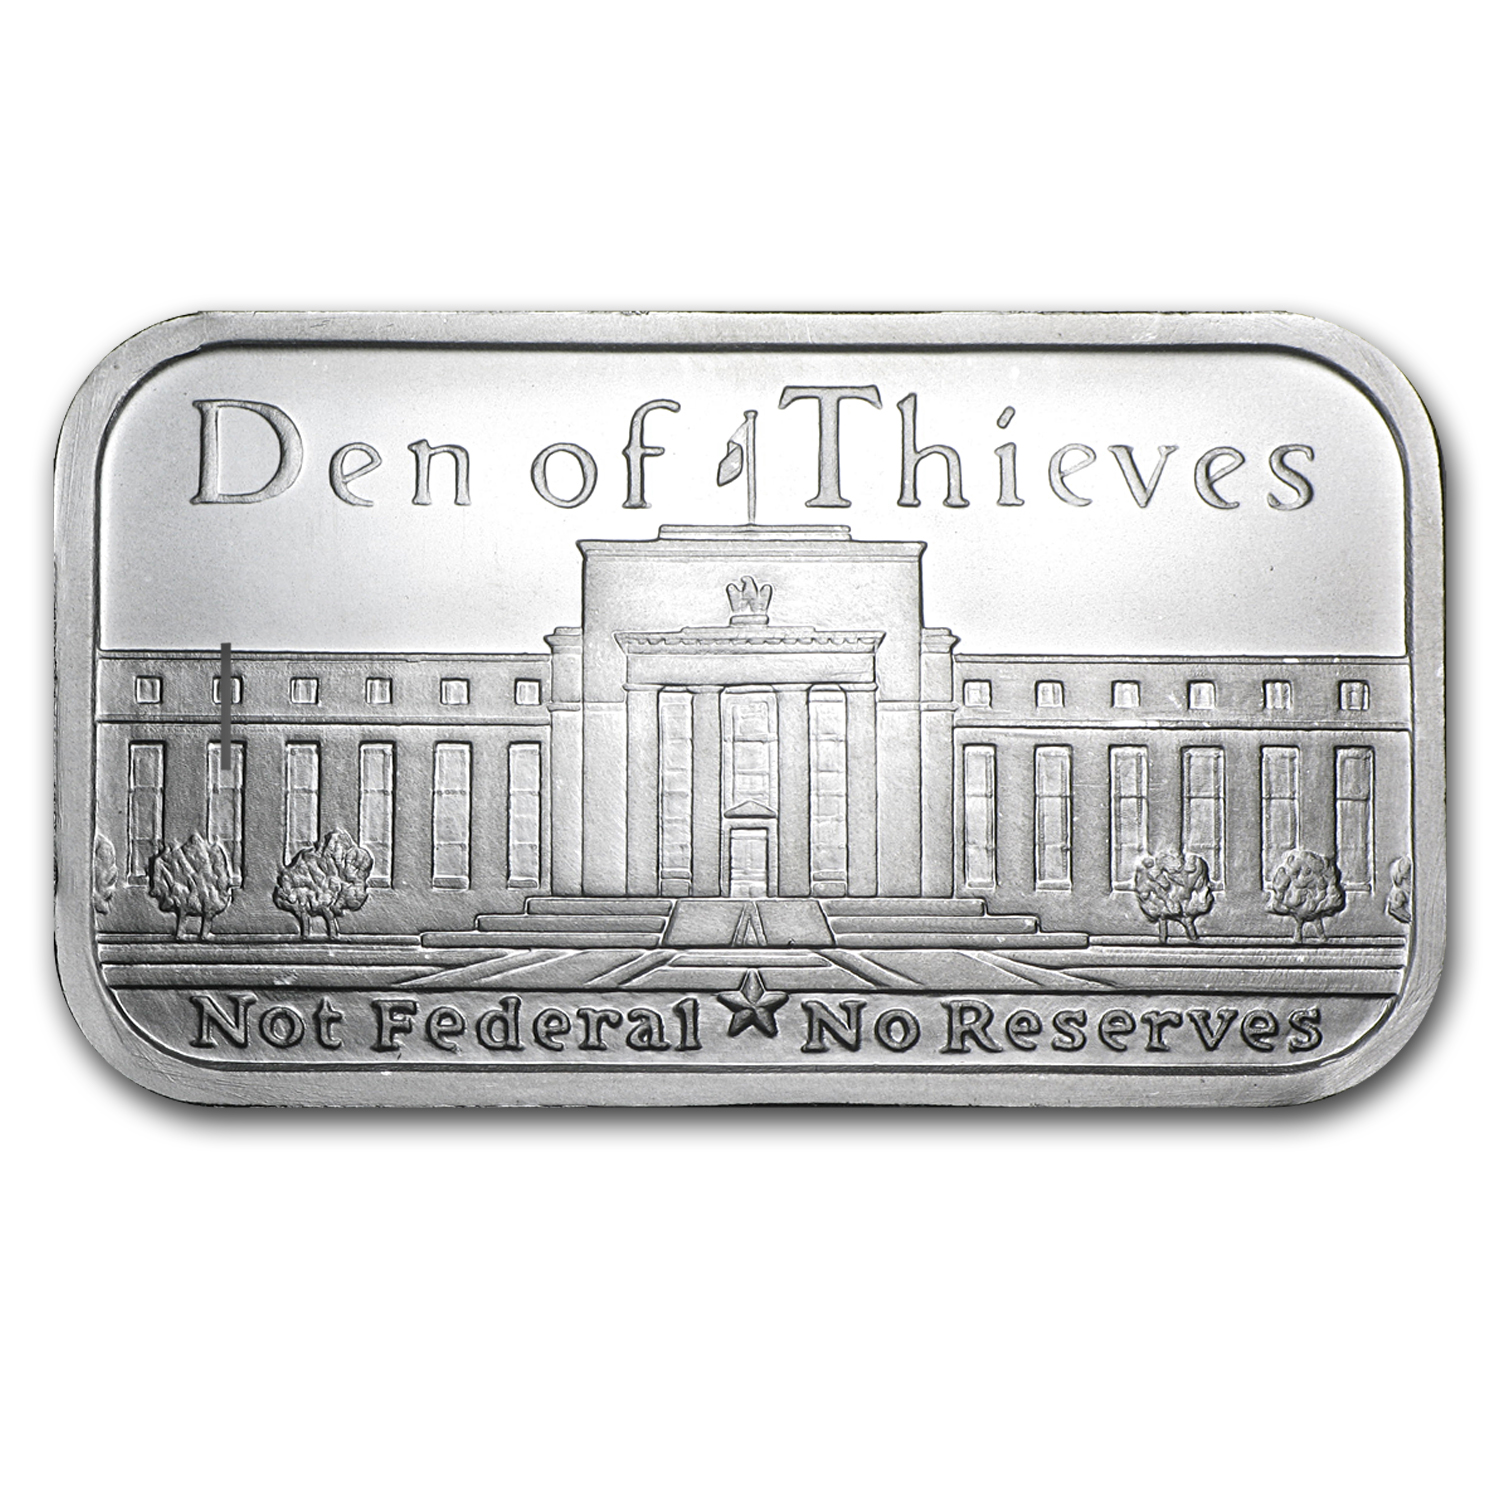 1 oz Silver Shield Bar - Den of Thieves